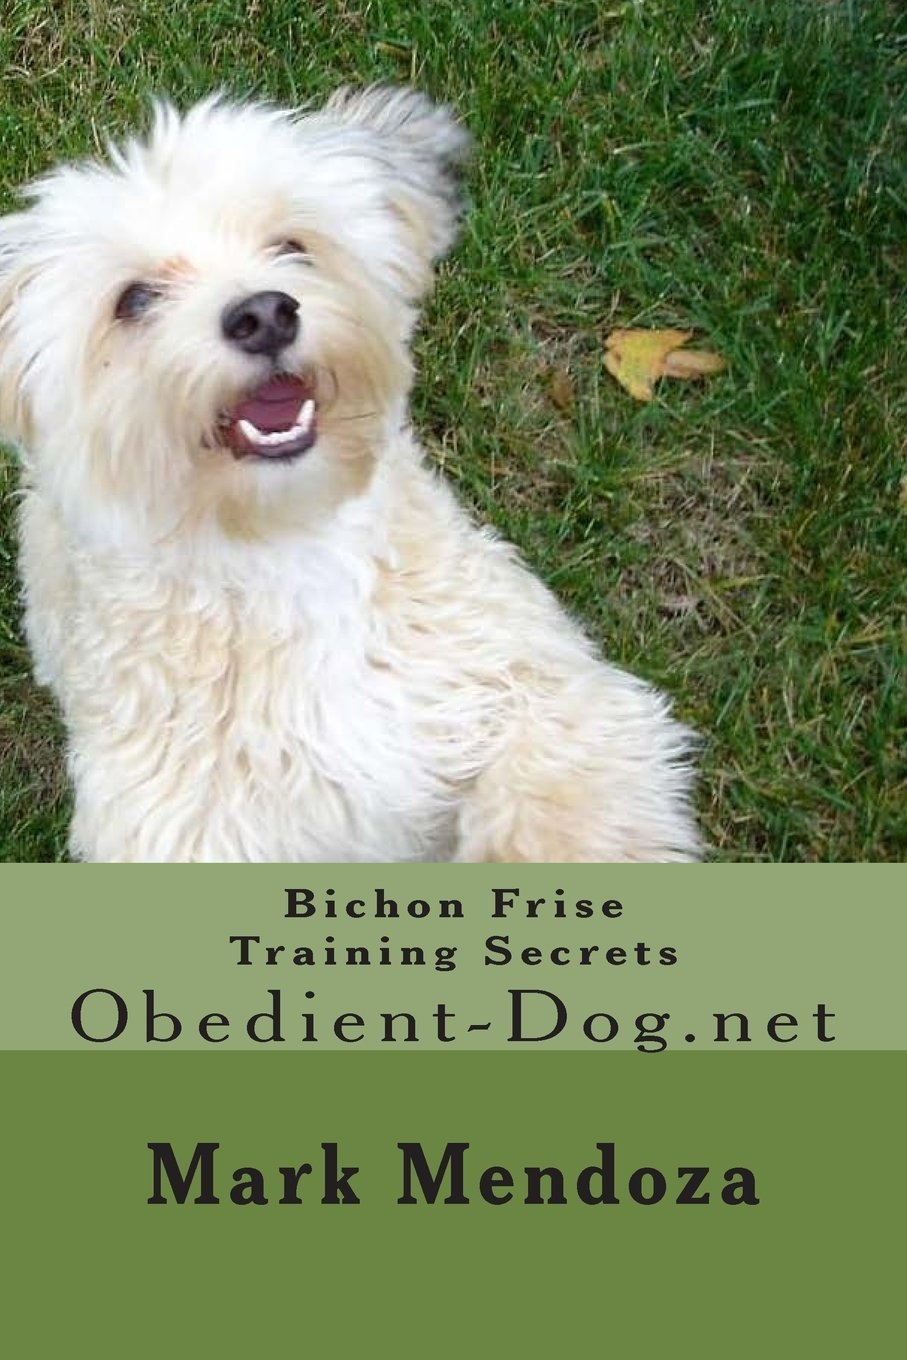 Bichon Frise Training Secrets: Obedient-Dog.net